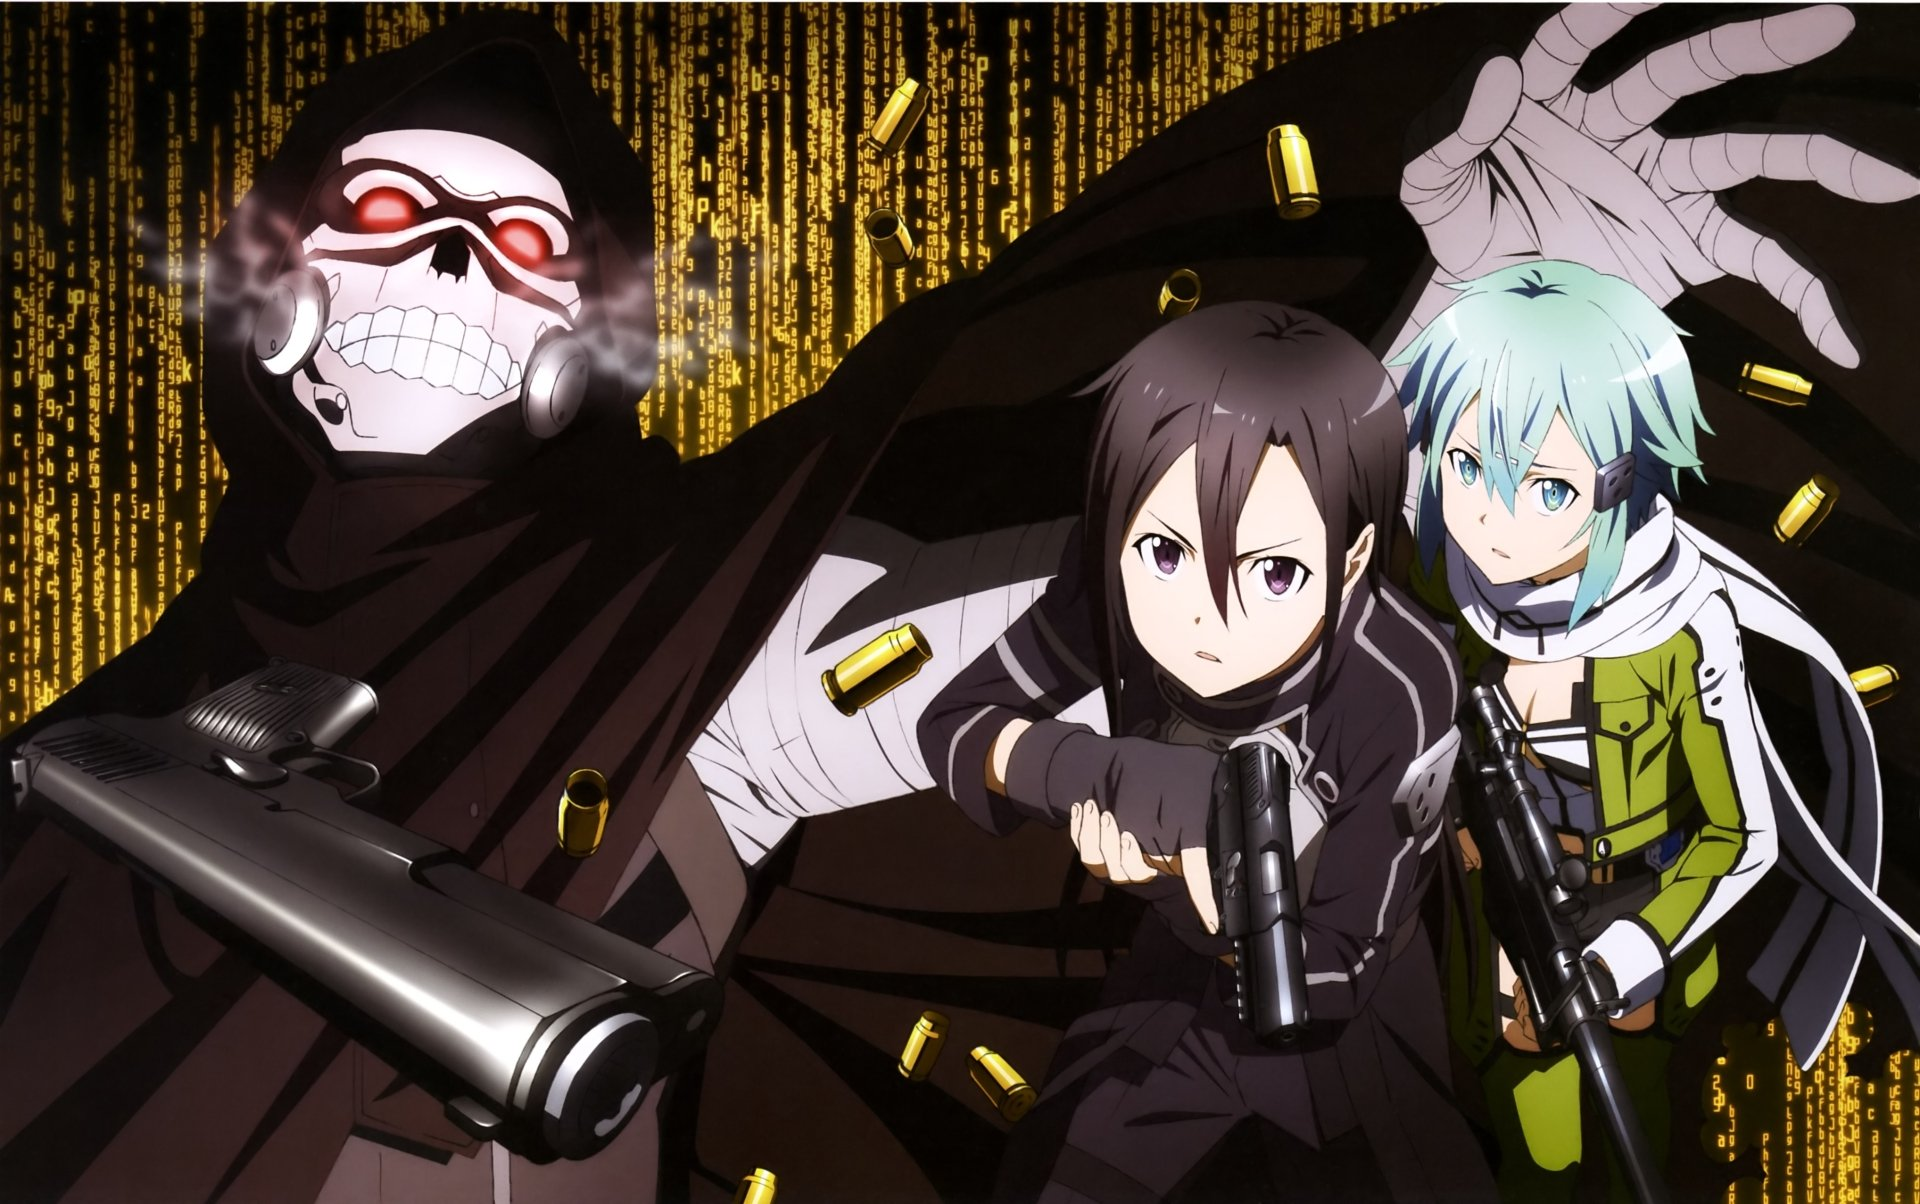 3840x1080 Hd Wallpapers Sad Quote Kirito And Sinon Vs Death Gun 4k Ultra Hd Wallpaper